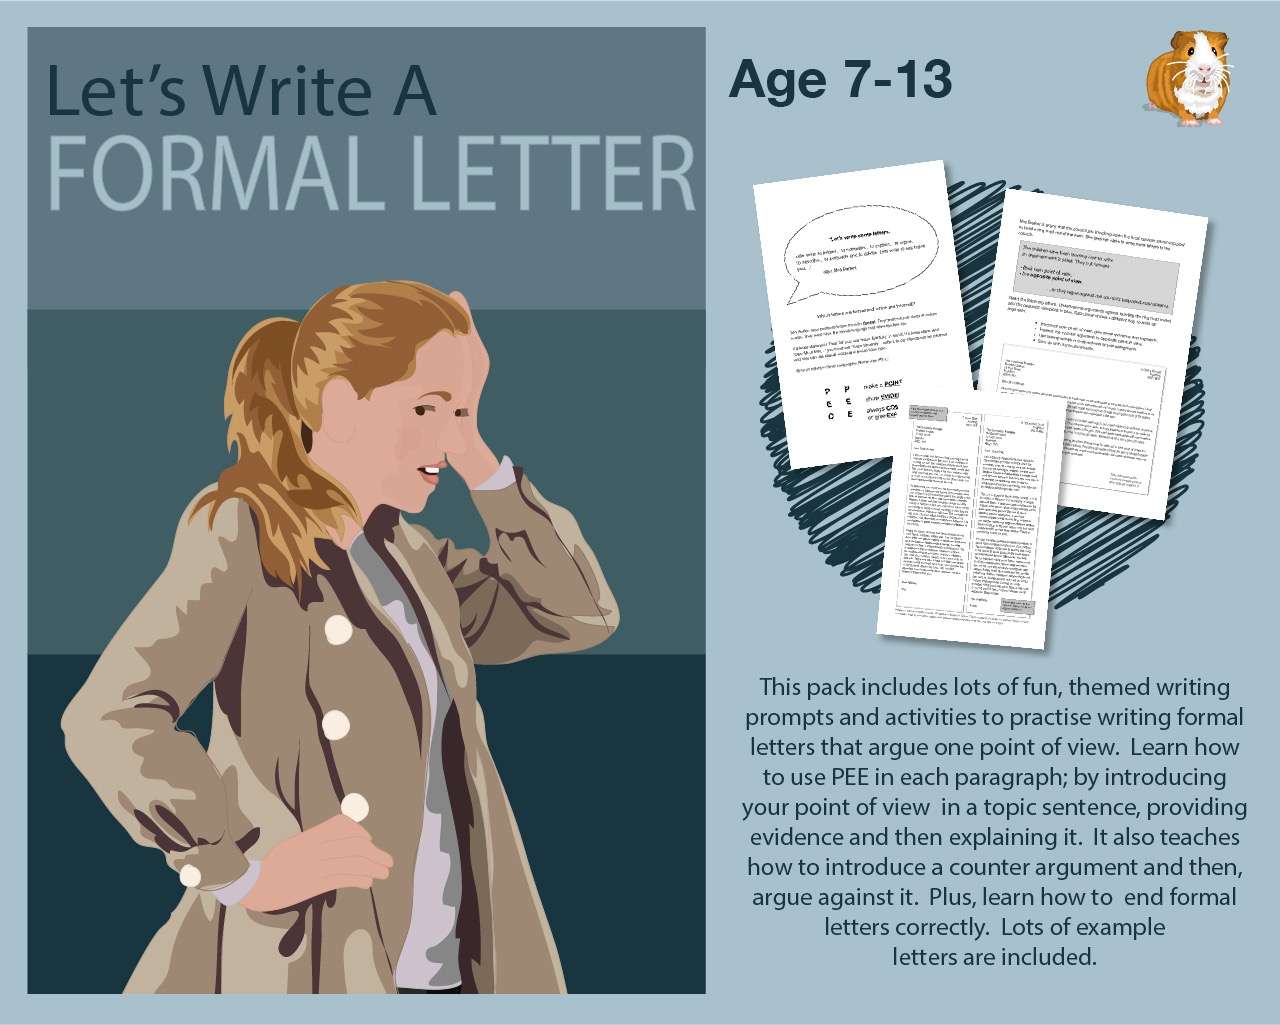 Write A Formal Letter  (7-13 years)